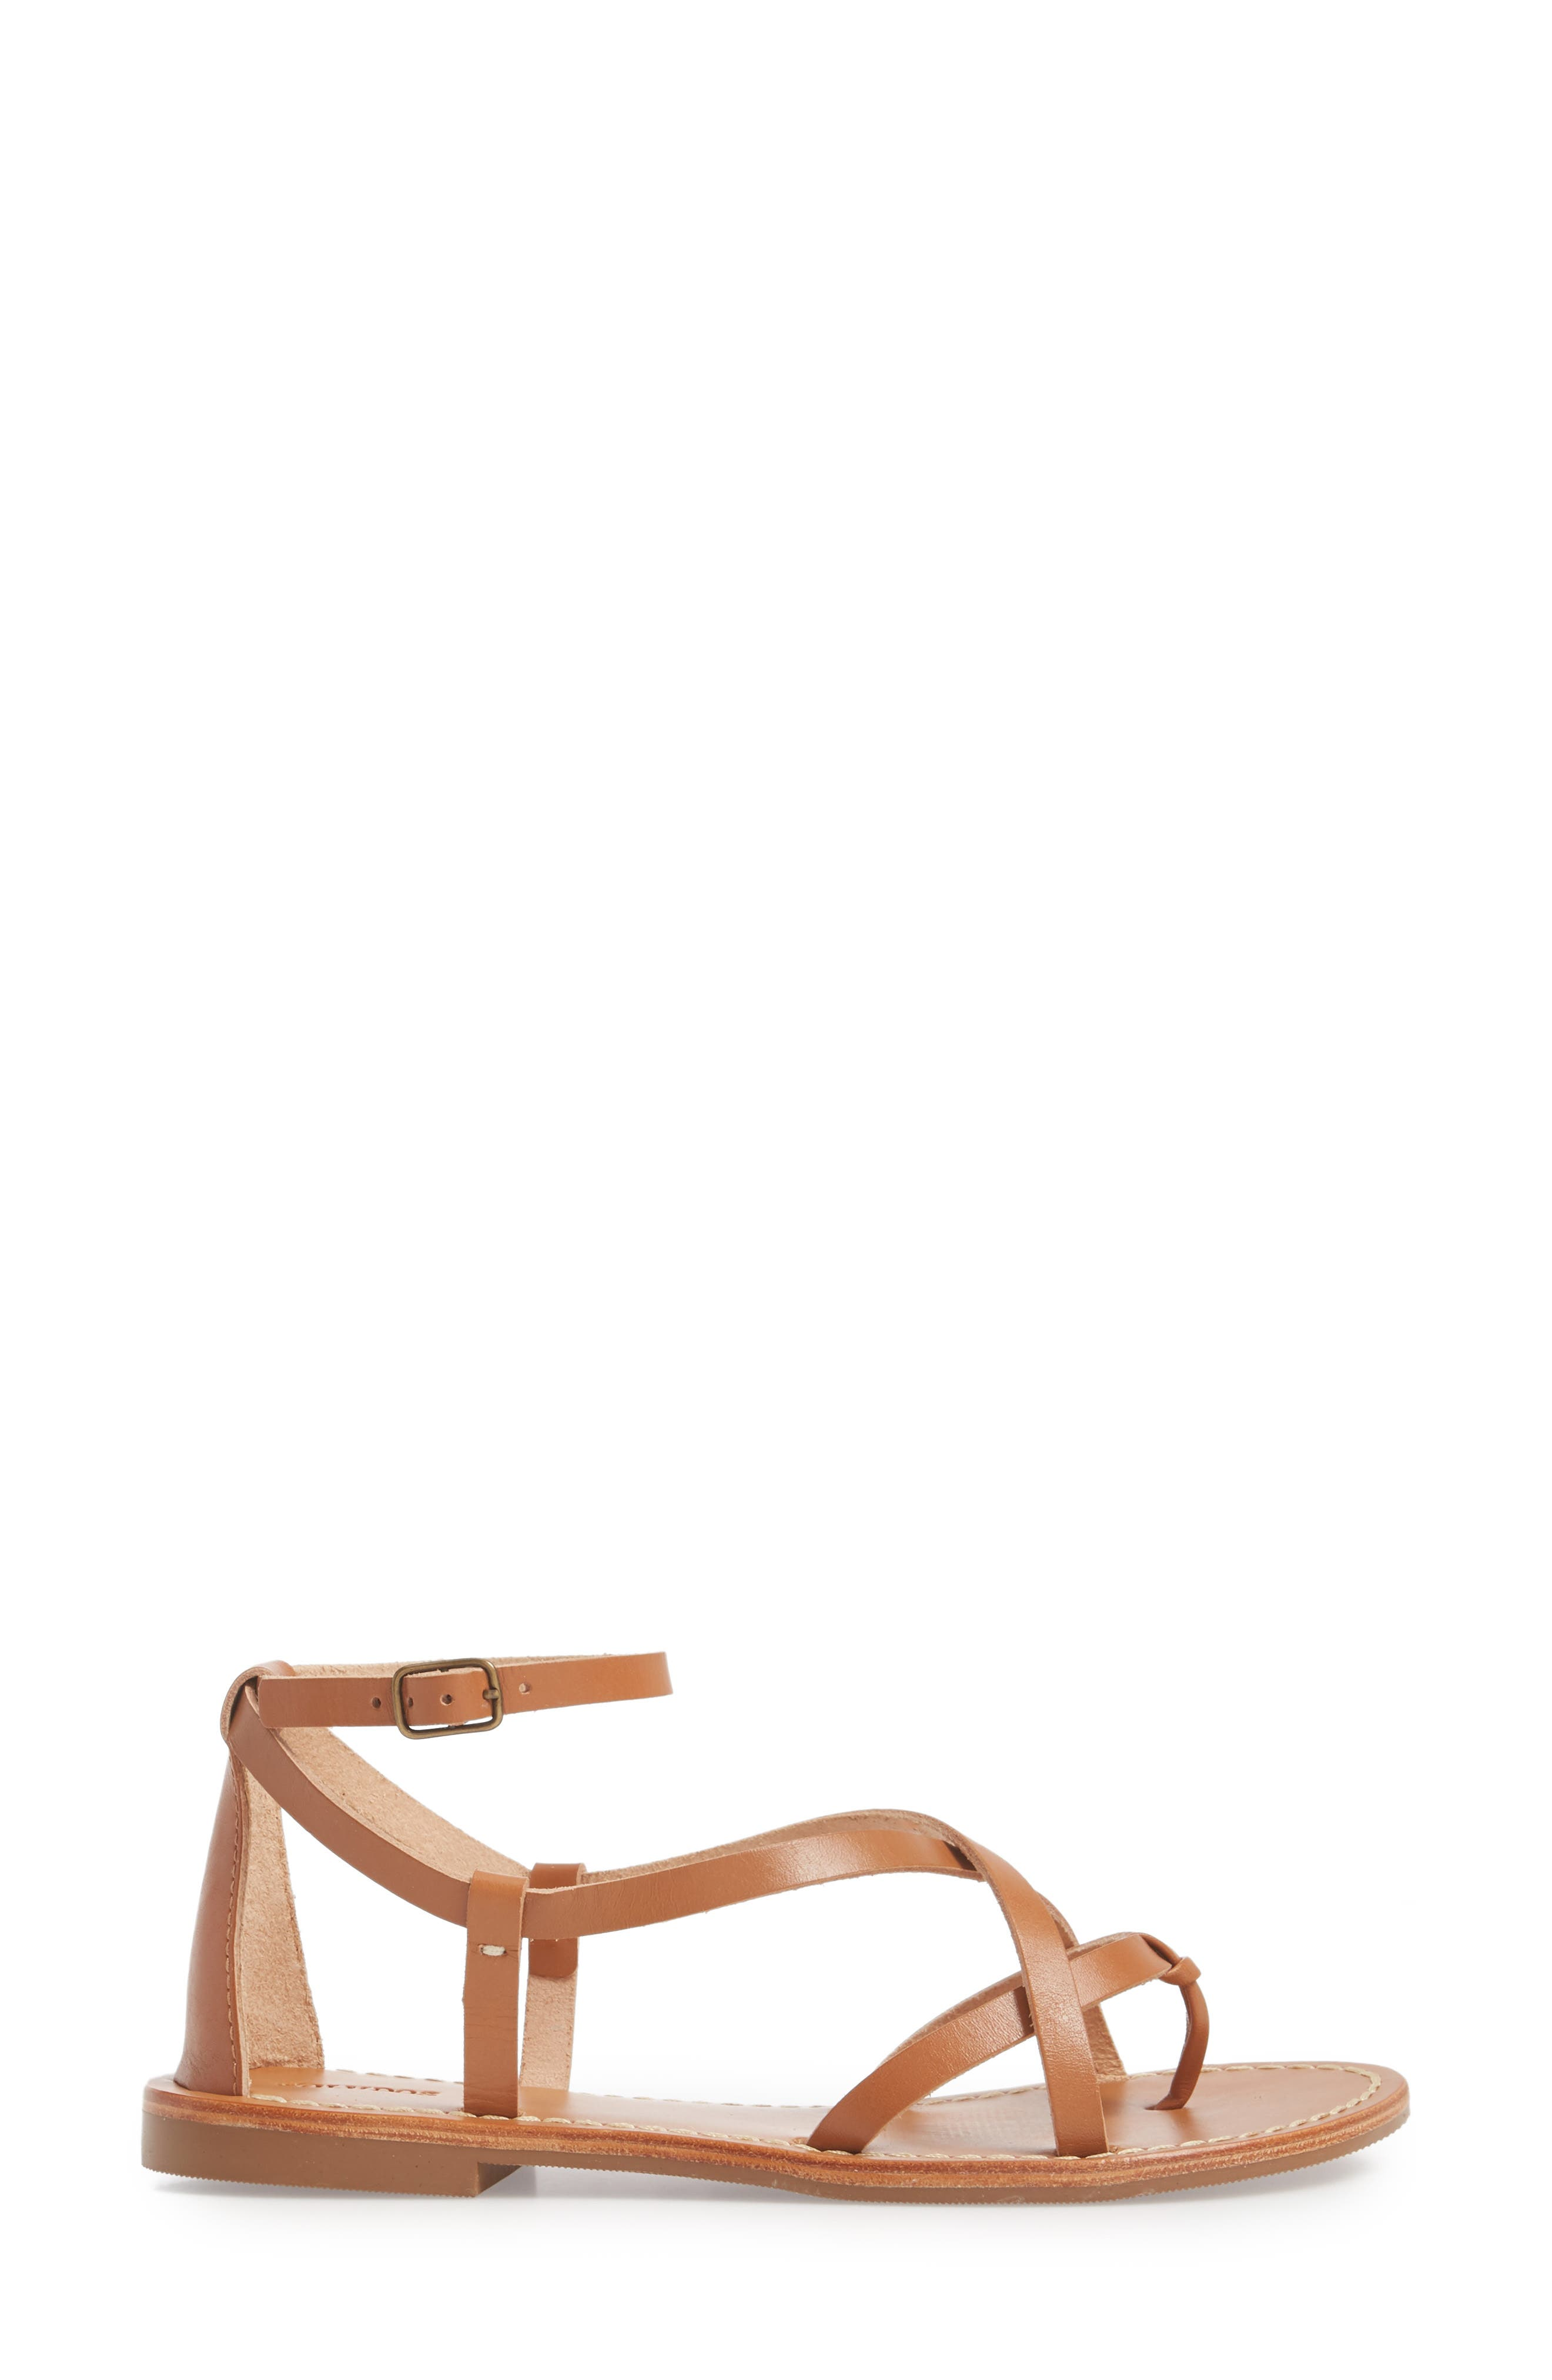 Strappy Sandal,                             Alternate thumbnail 3, color,                             Nude